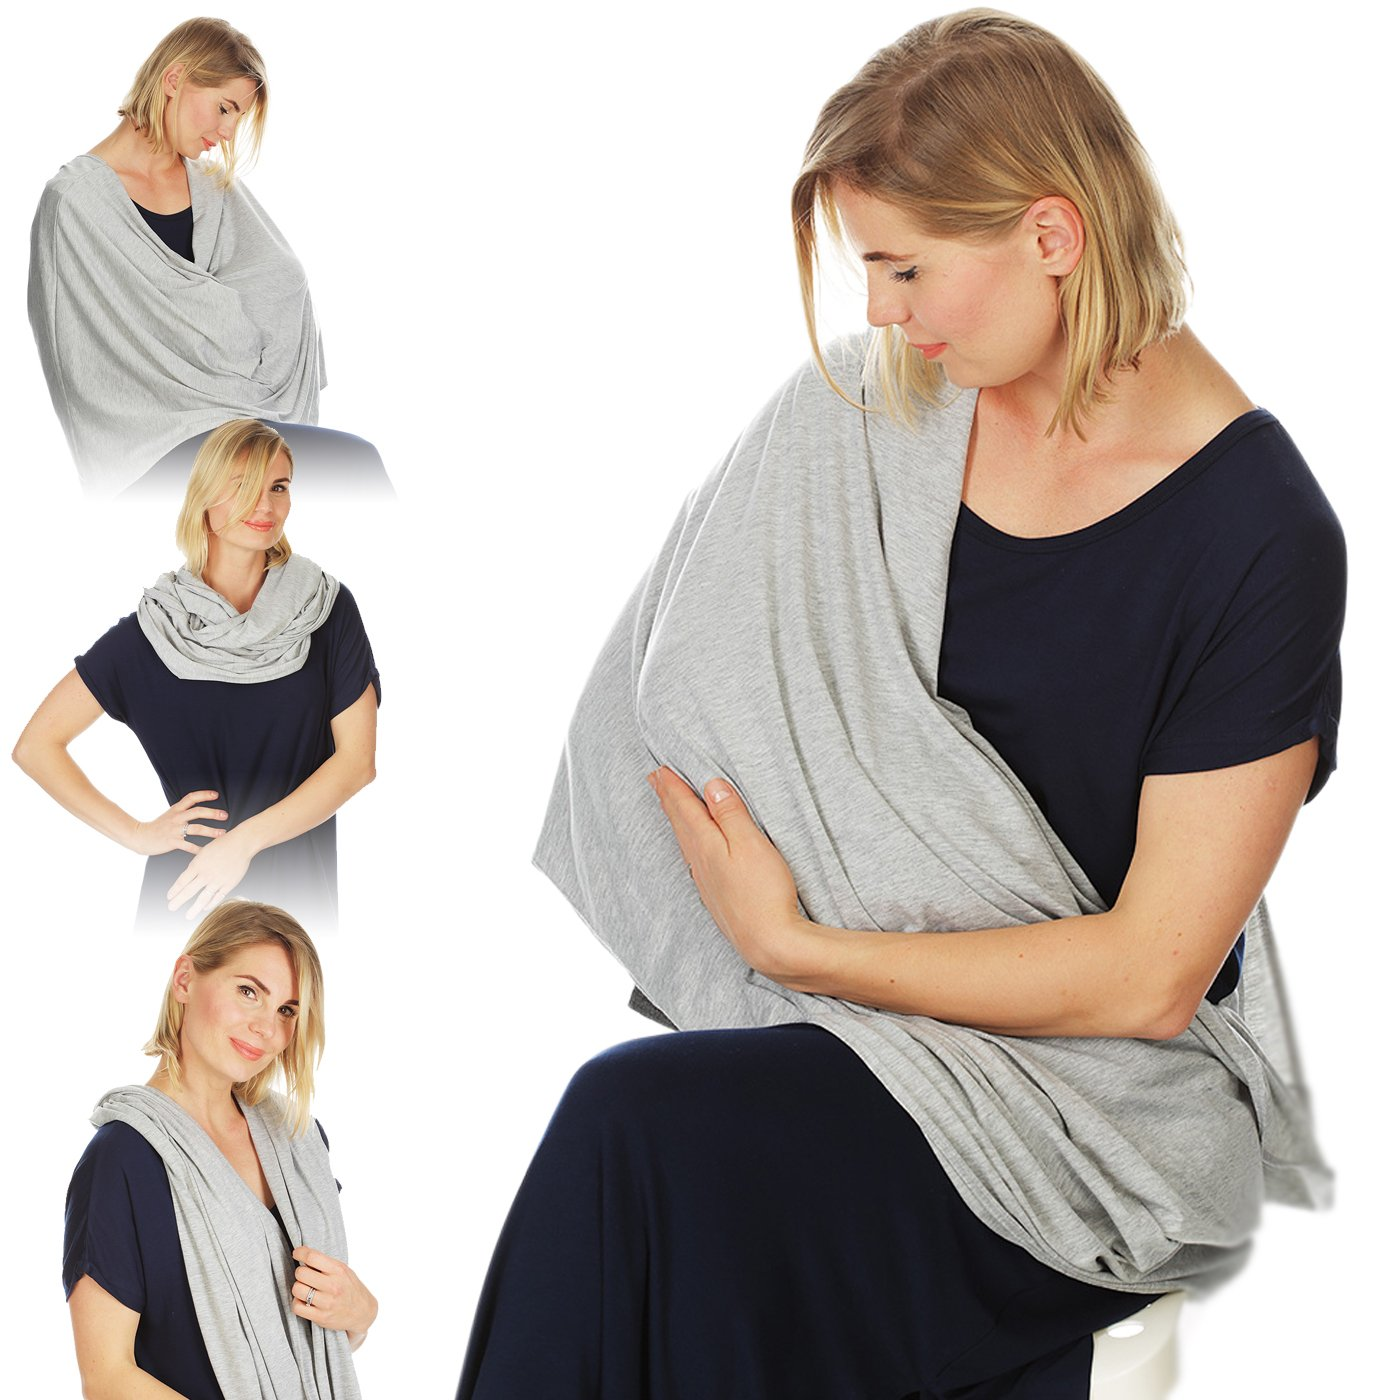 Kiddo Care Nursing Cover Infinity Nursing Scarf for Breastfeeding (Grey White Narrow Stripes)